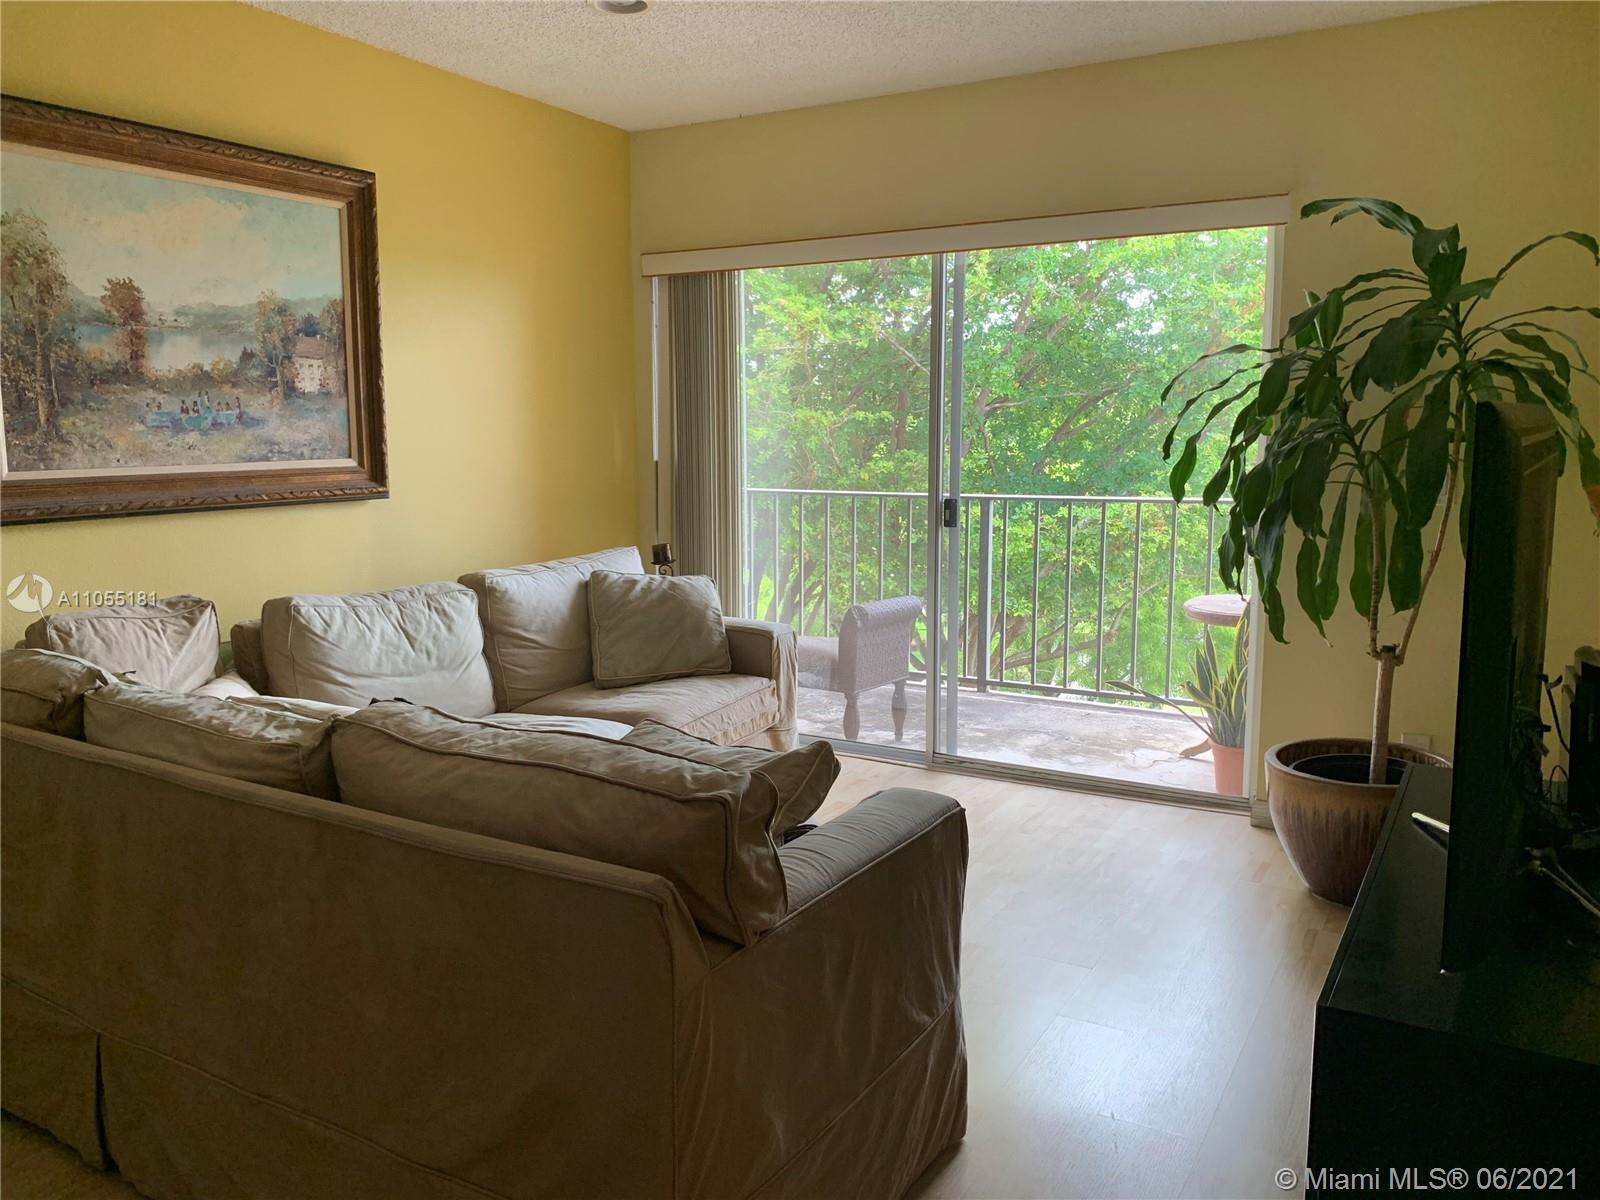 Beautiful and spacious 1bed/1 Bath unit in quiet community. Located in highly sought after Kings Creek community. Conveniently located near Dadeland Mall, Metro Rail, and Palmetto expressway. Maintenance fee includes water/sewer, basic cable and access to the Kings Creek amenities which include a pool, tennis courts, playground, basketball court, community room and more.